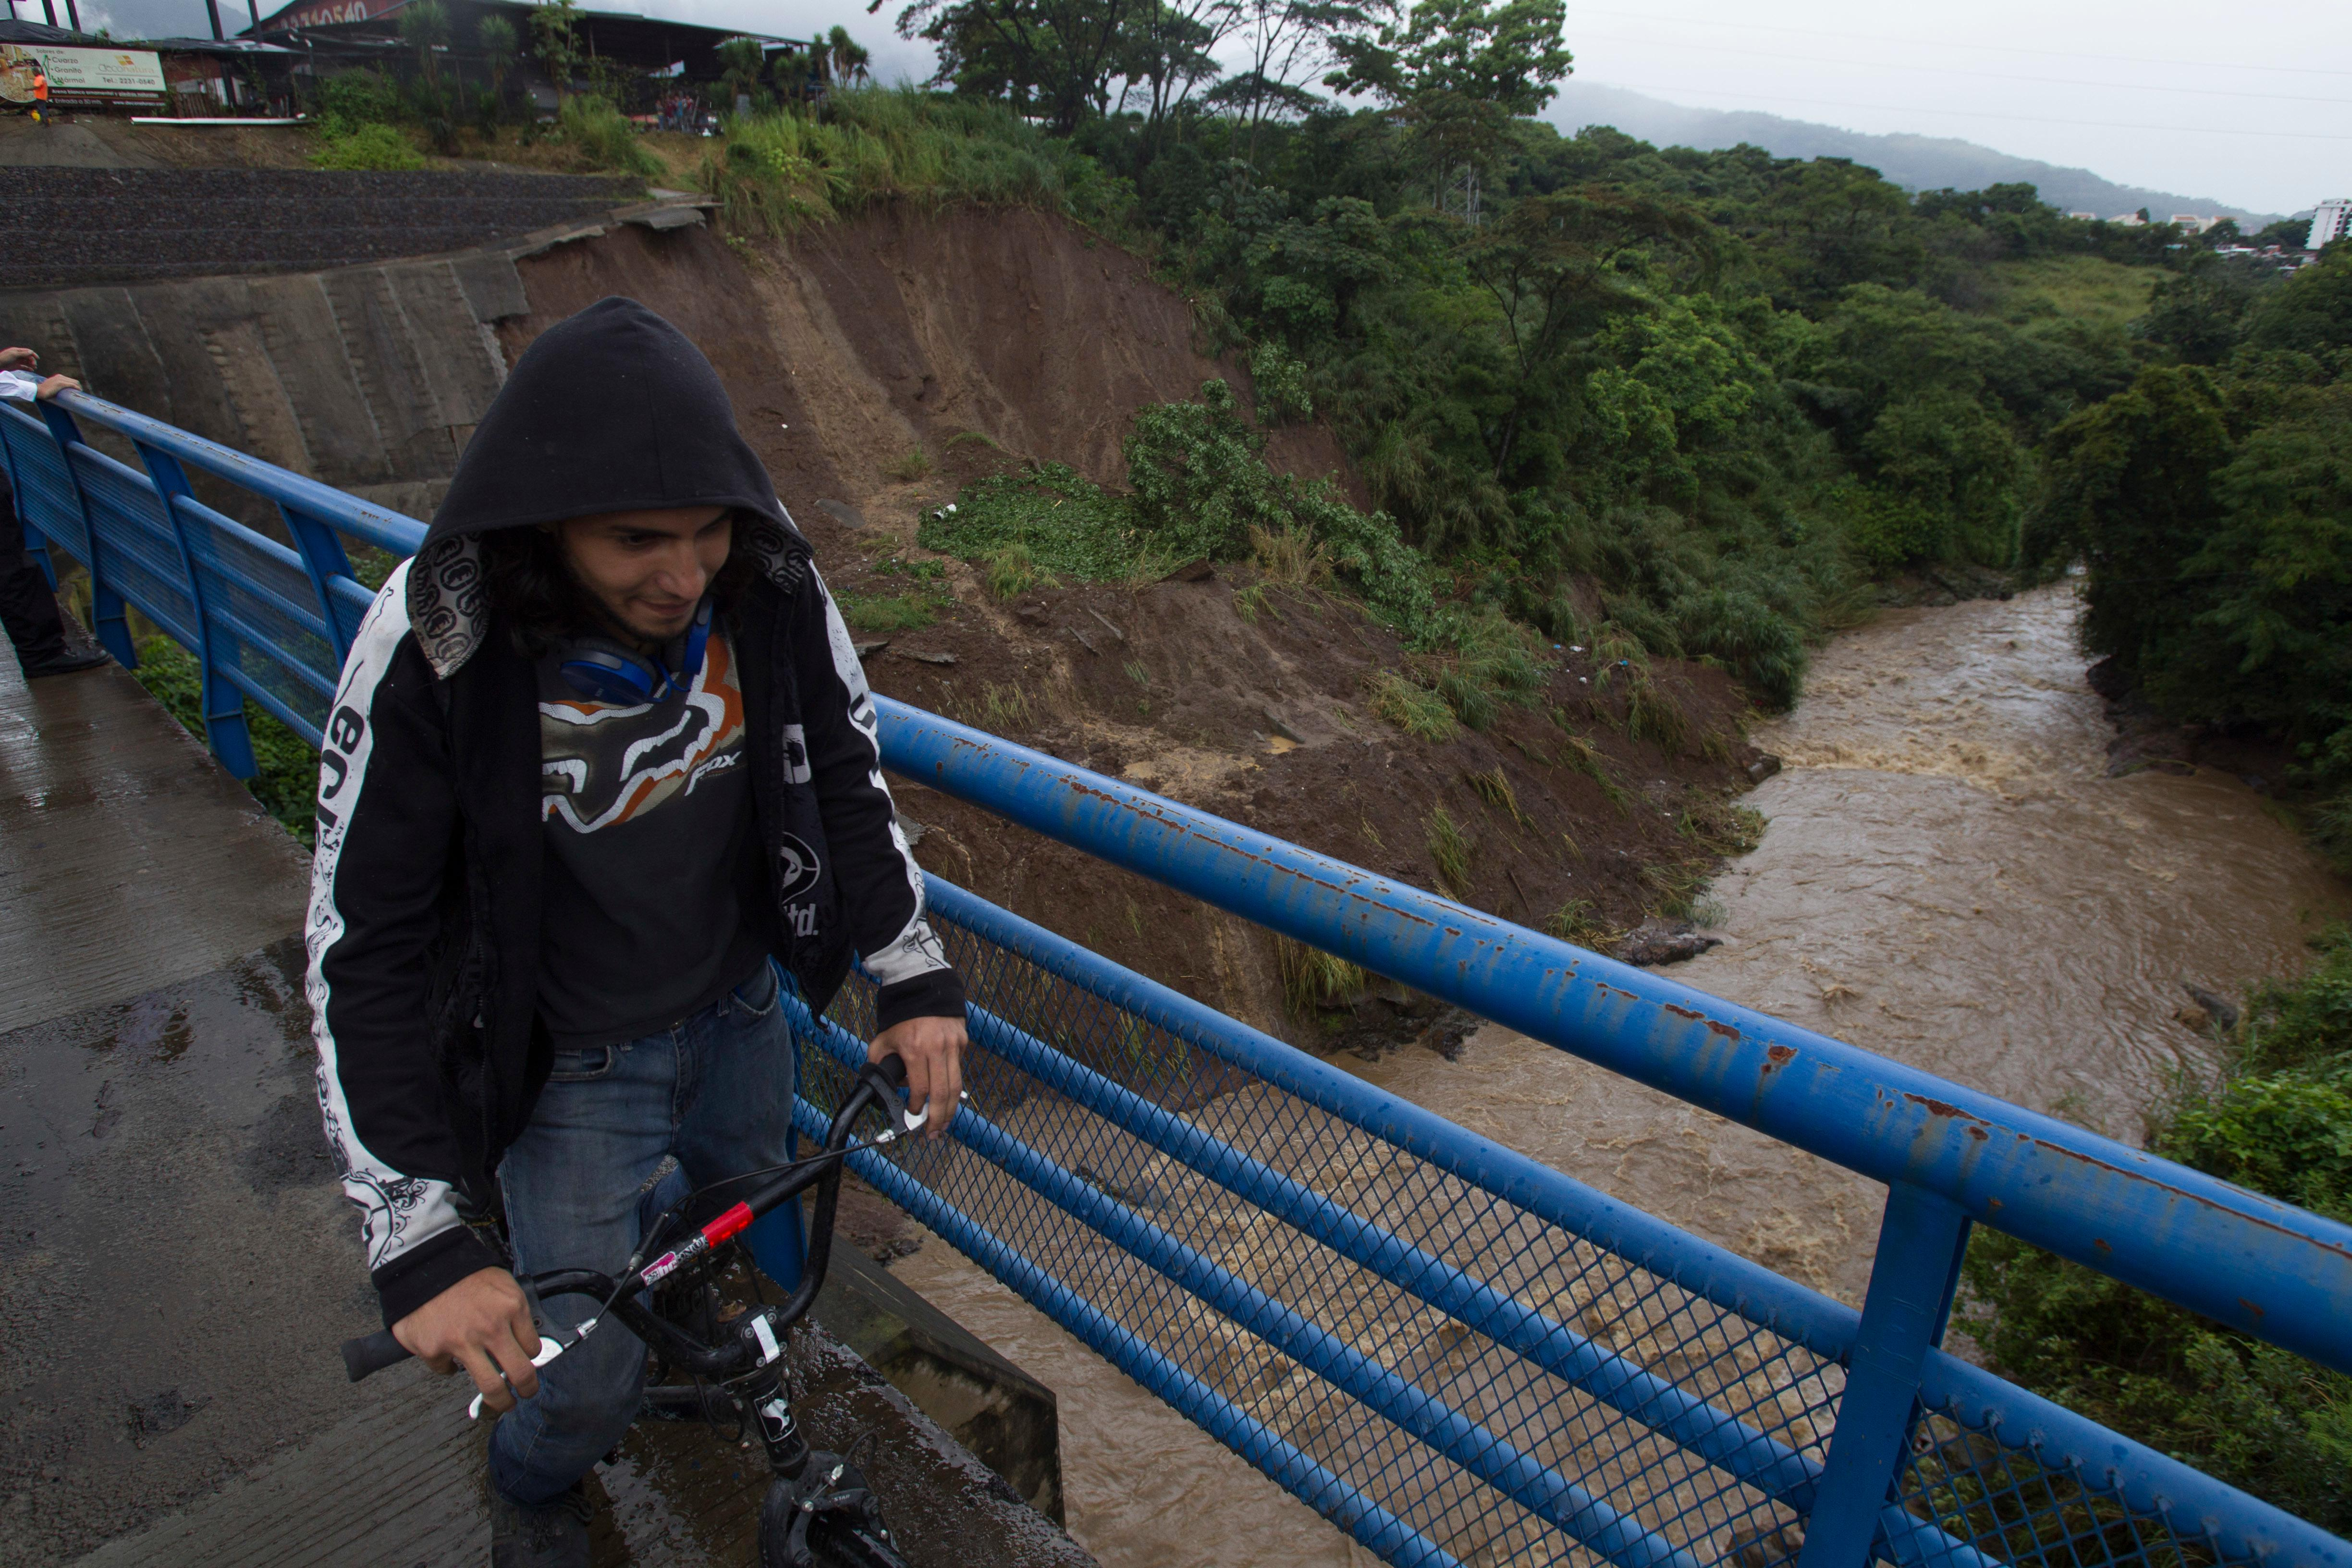 A cyclist rides over a bridge over the Maria Aguilar river on the outskirt San Jose, Costa Rica, Thursday, Oct. 5, 2017. Tropical Storm Nate formed off the coast of Nicaragua on Thursday and was being blamed for at least 17 deaths in Central America as it spun north toward a potential landfall on the U.S. Gulf Coast as a hurricane over the weekend. (AP Photo/Moises Castillo)